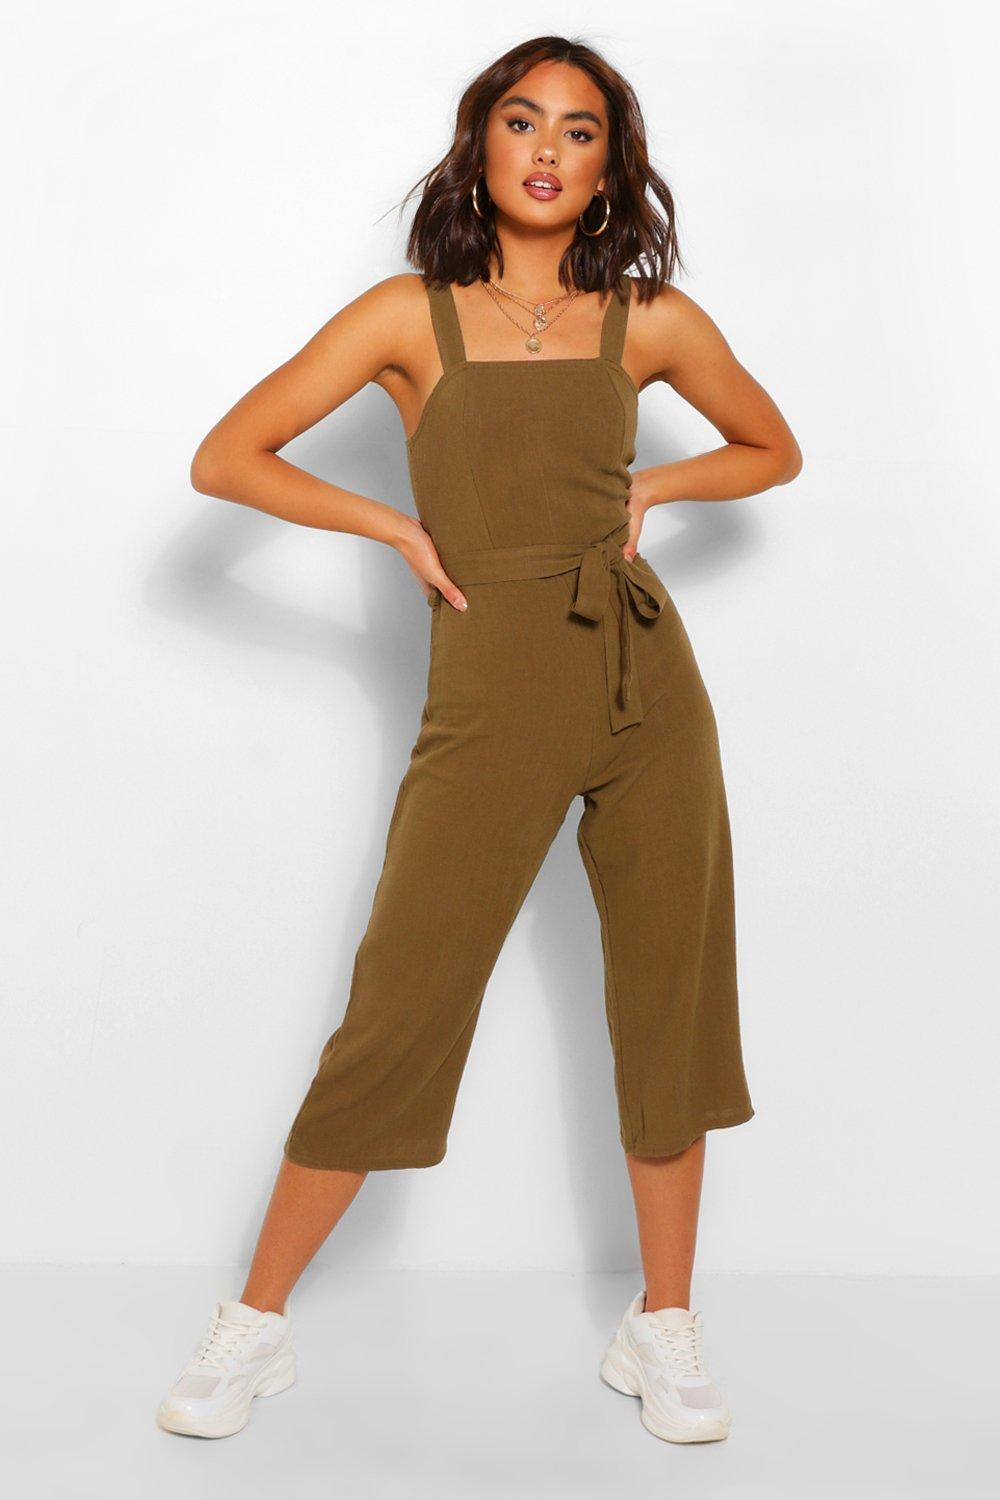 Cottagecore Clothing, Soft Aesthetic Womens Linen Culotte Jumpsuit With Tie Front - Green - 10 $18.00 AT vintagedancer.com